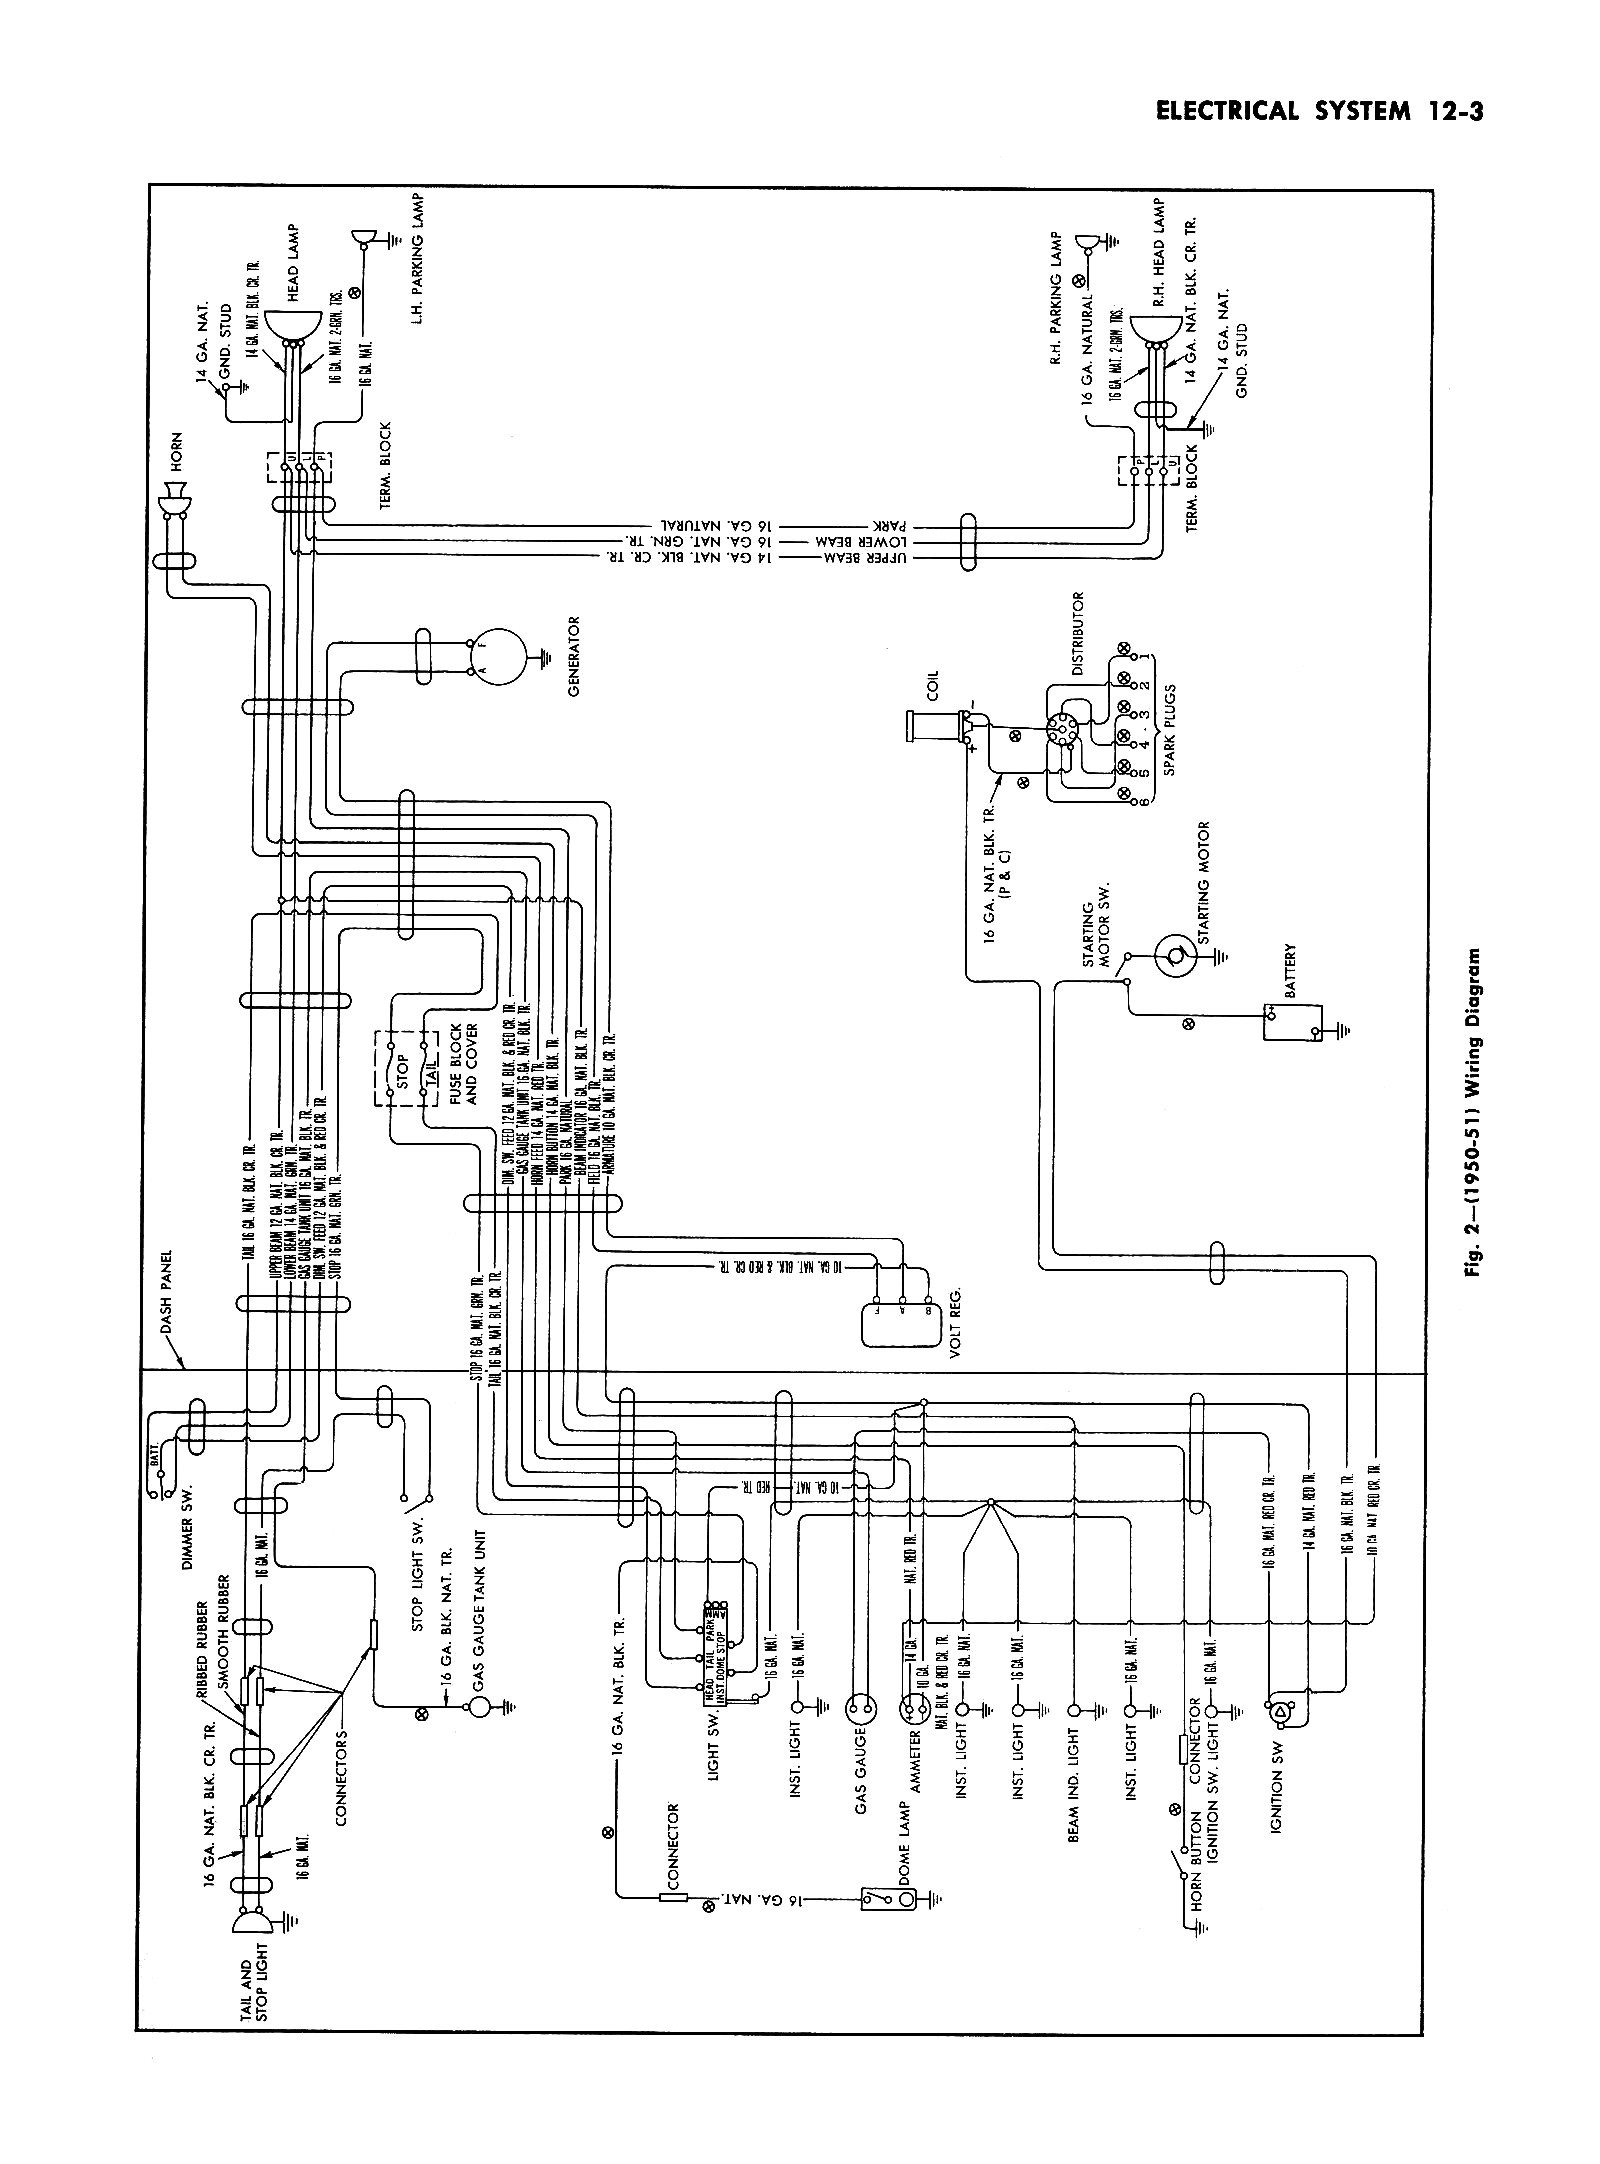 Gmc Truck Wiring Diagrams Wiring Diagram 1951 Chevy Truck